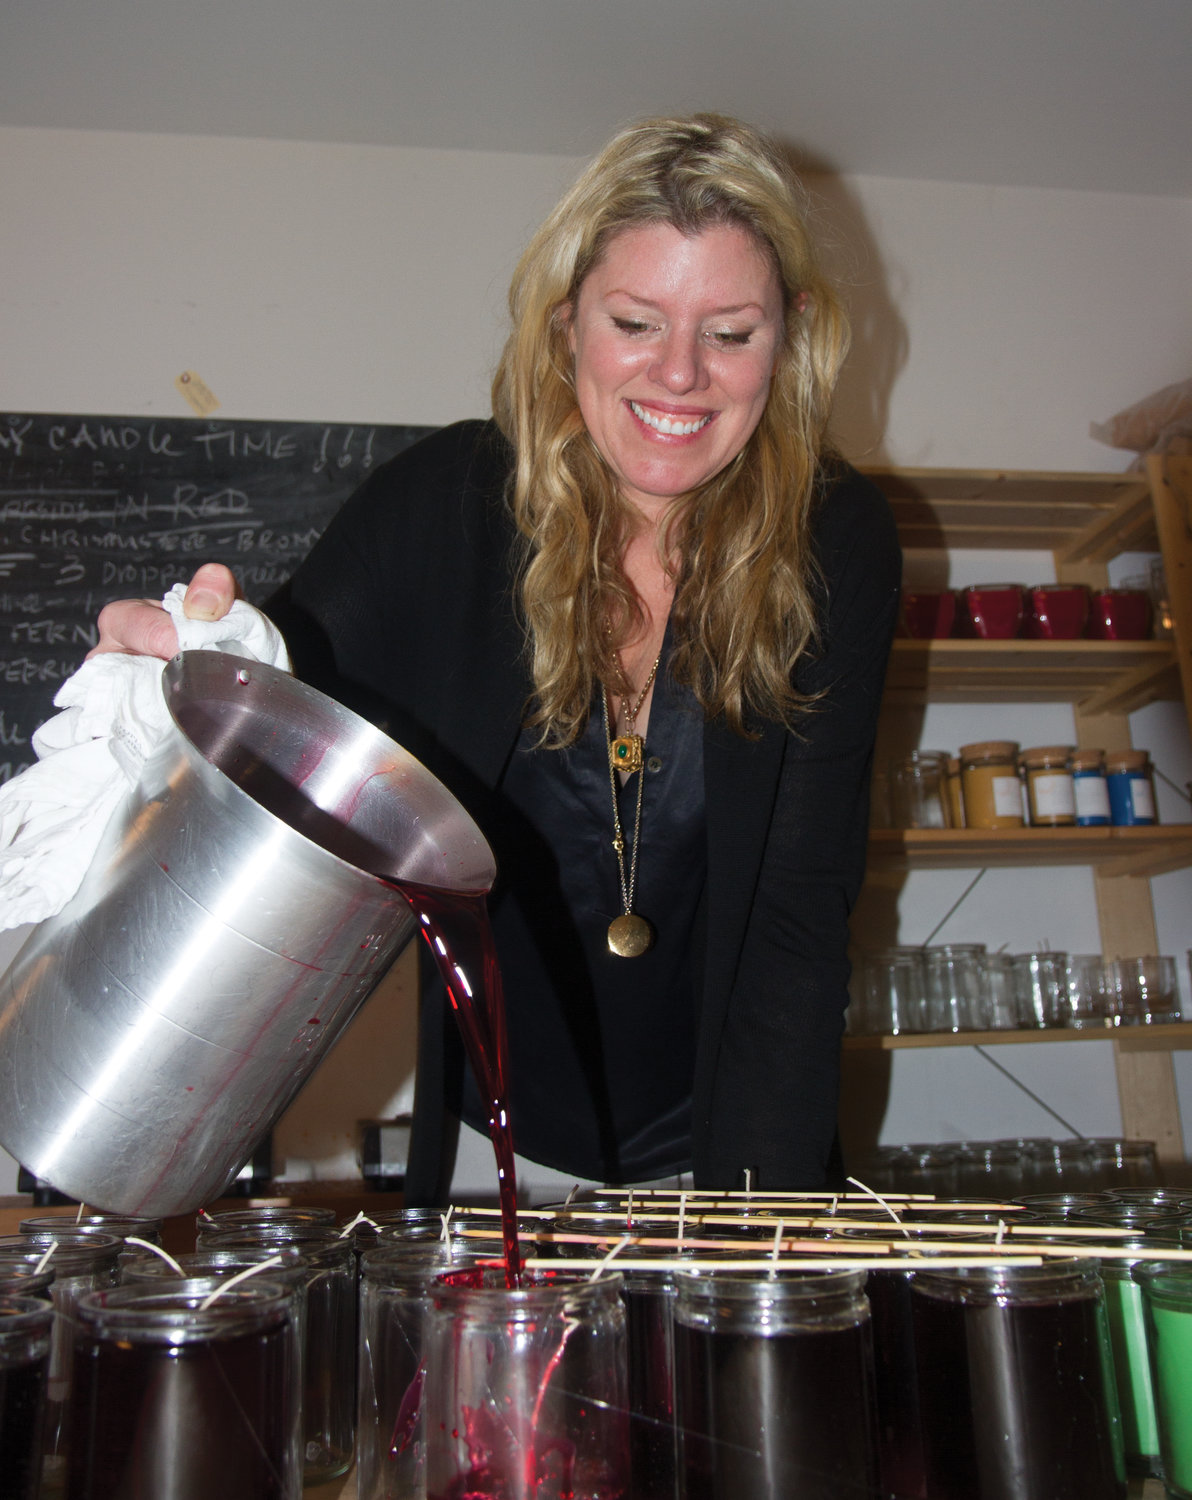 Heather Pollock Sehulster, owner of Conservatory Coastal Home, pours scented liquid wax into glass jars in the back room of her shop. The candles are popular as gifts among customers, she said.